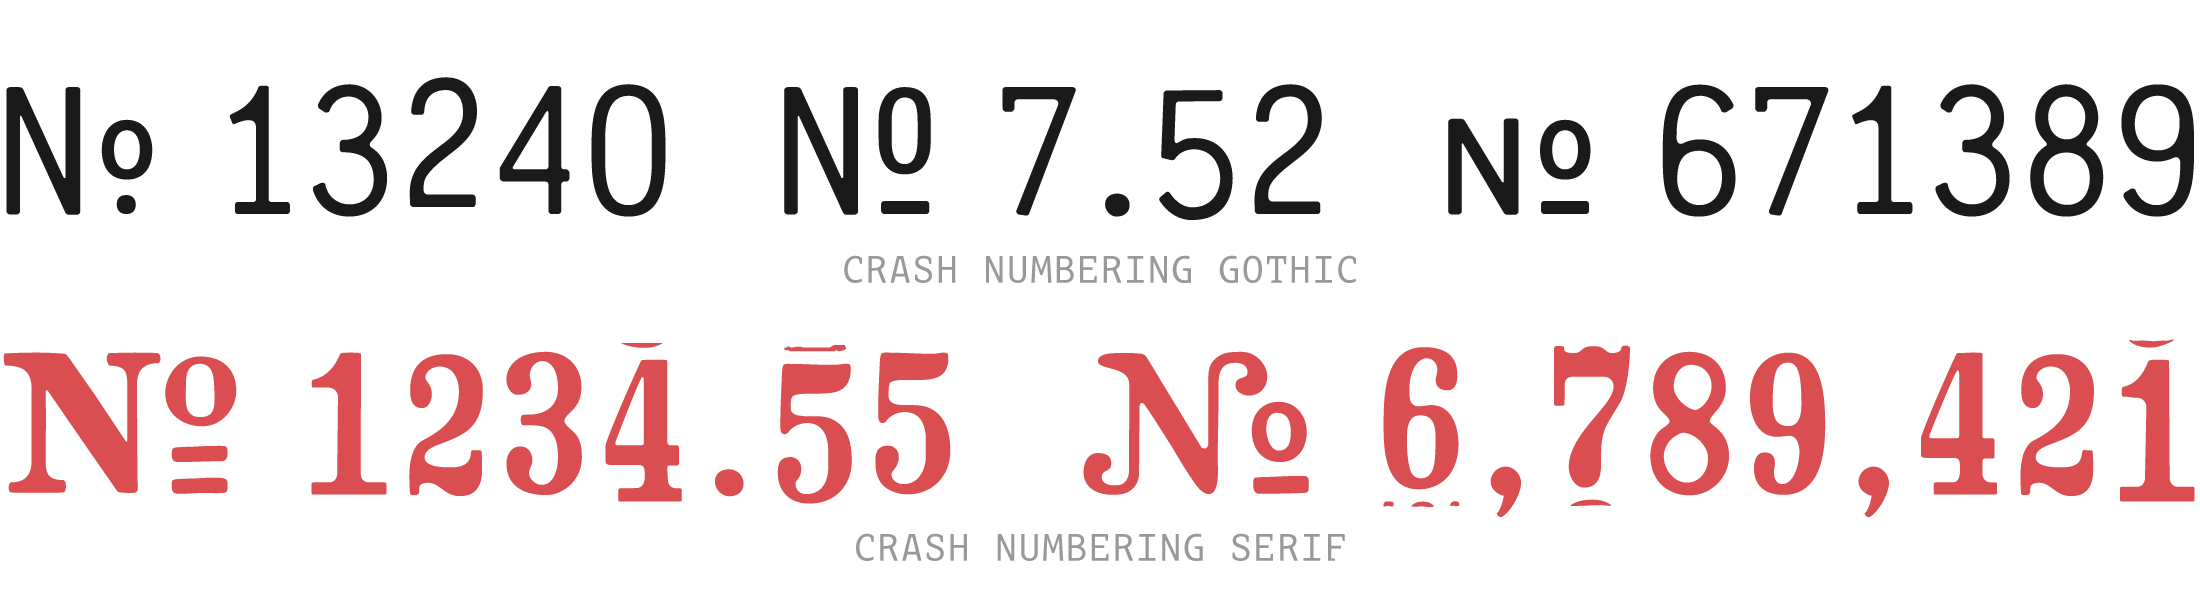 Crash-Numbering-Font-Specimen